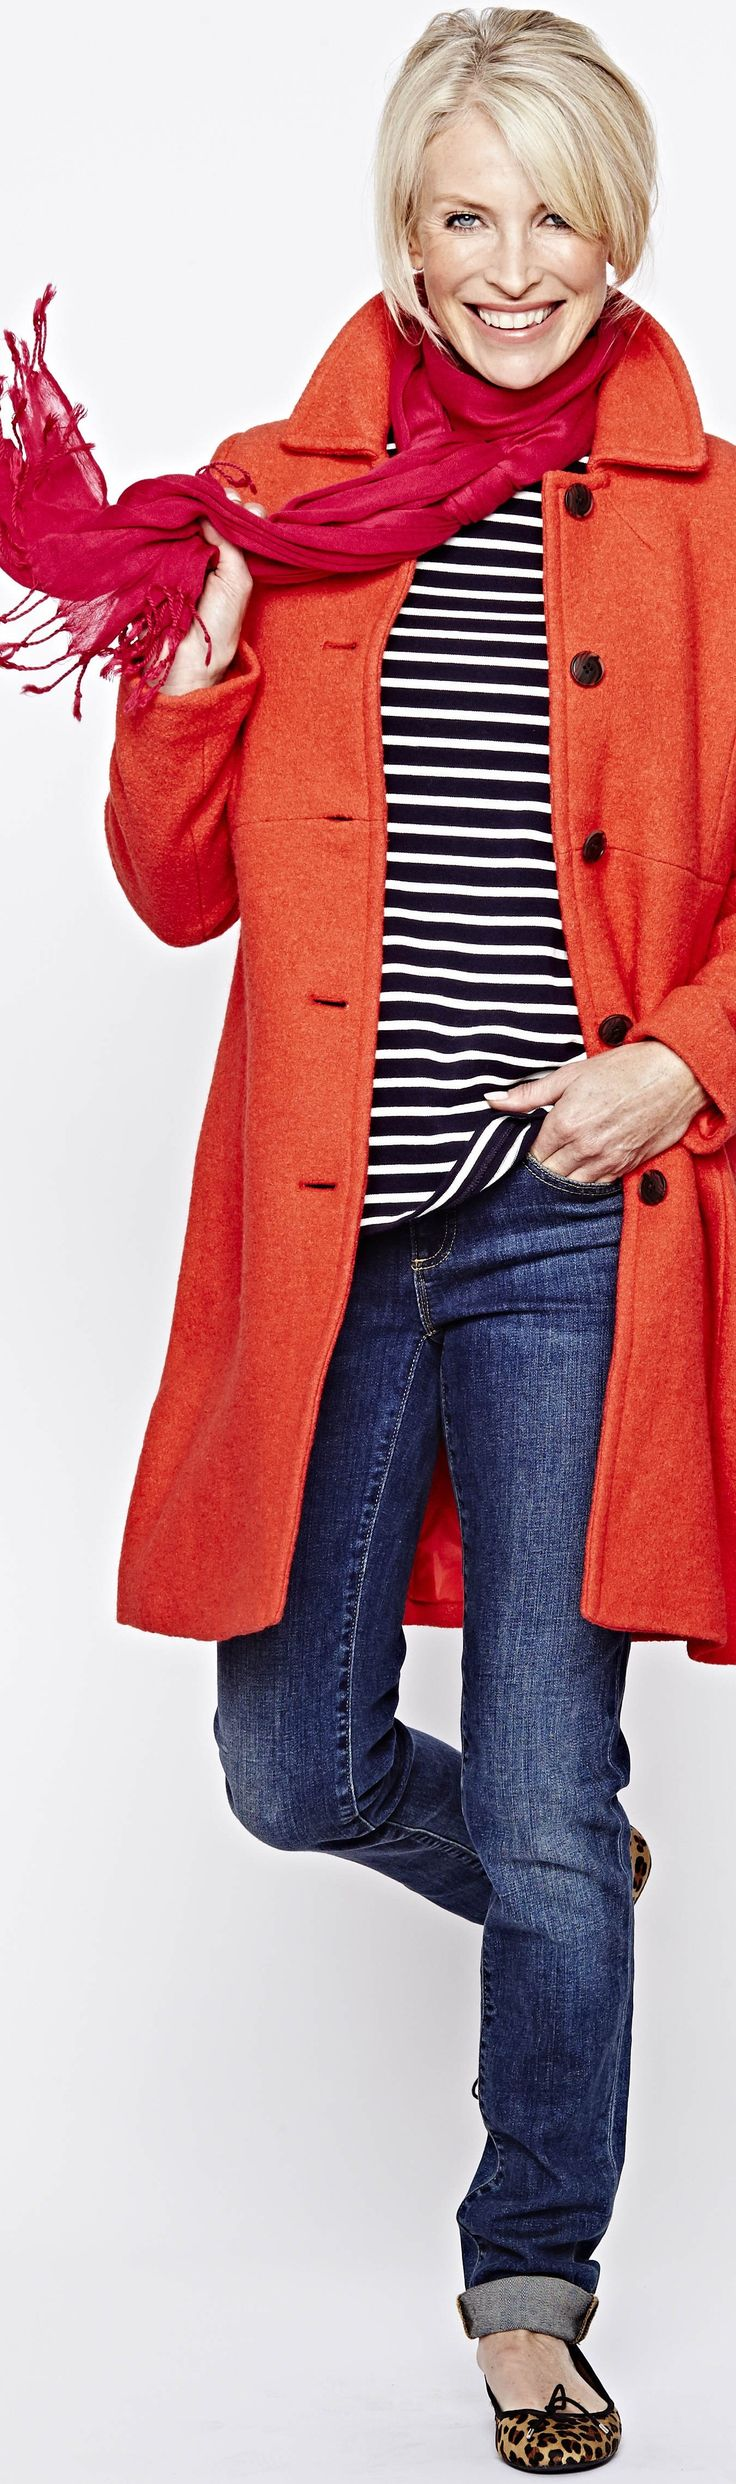 red-orange coat with berry pink scarf - http://www.boomerinas.com/2013/07/03/what-is-your-fashion-style-preppy-classic-or-boho/